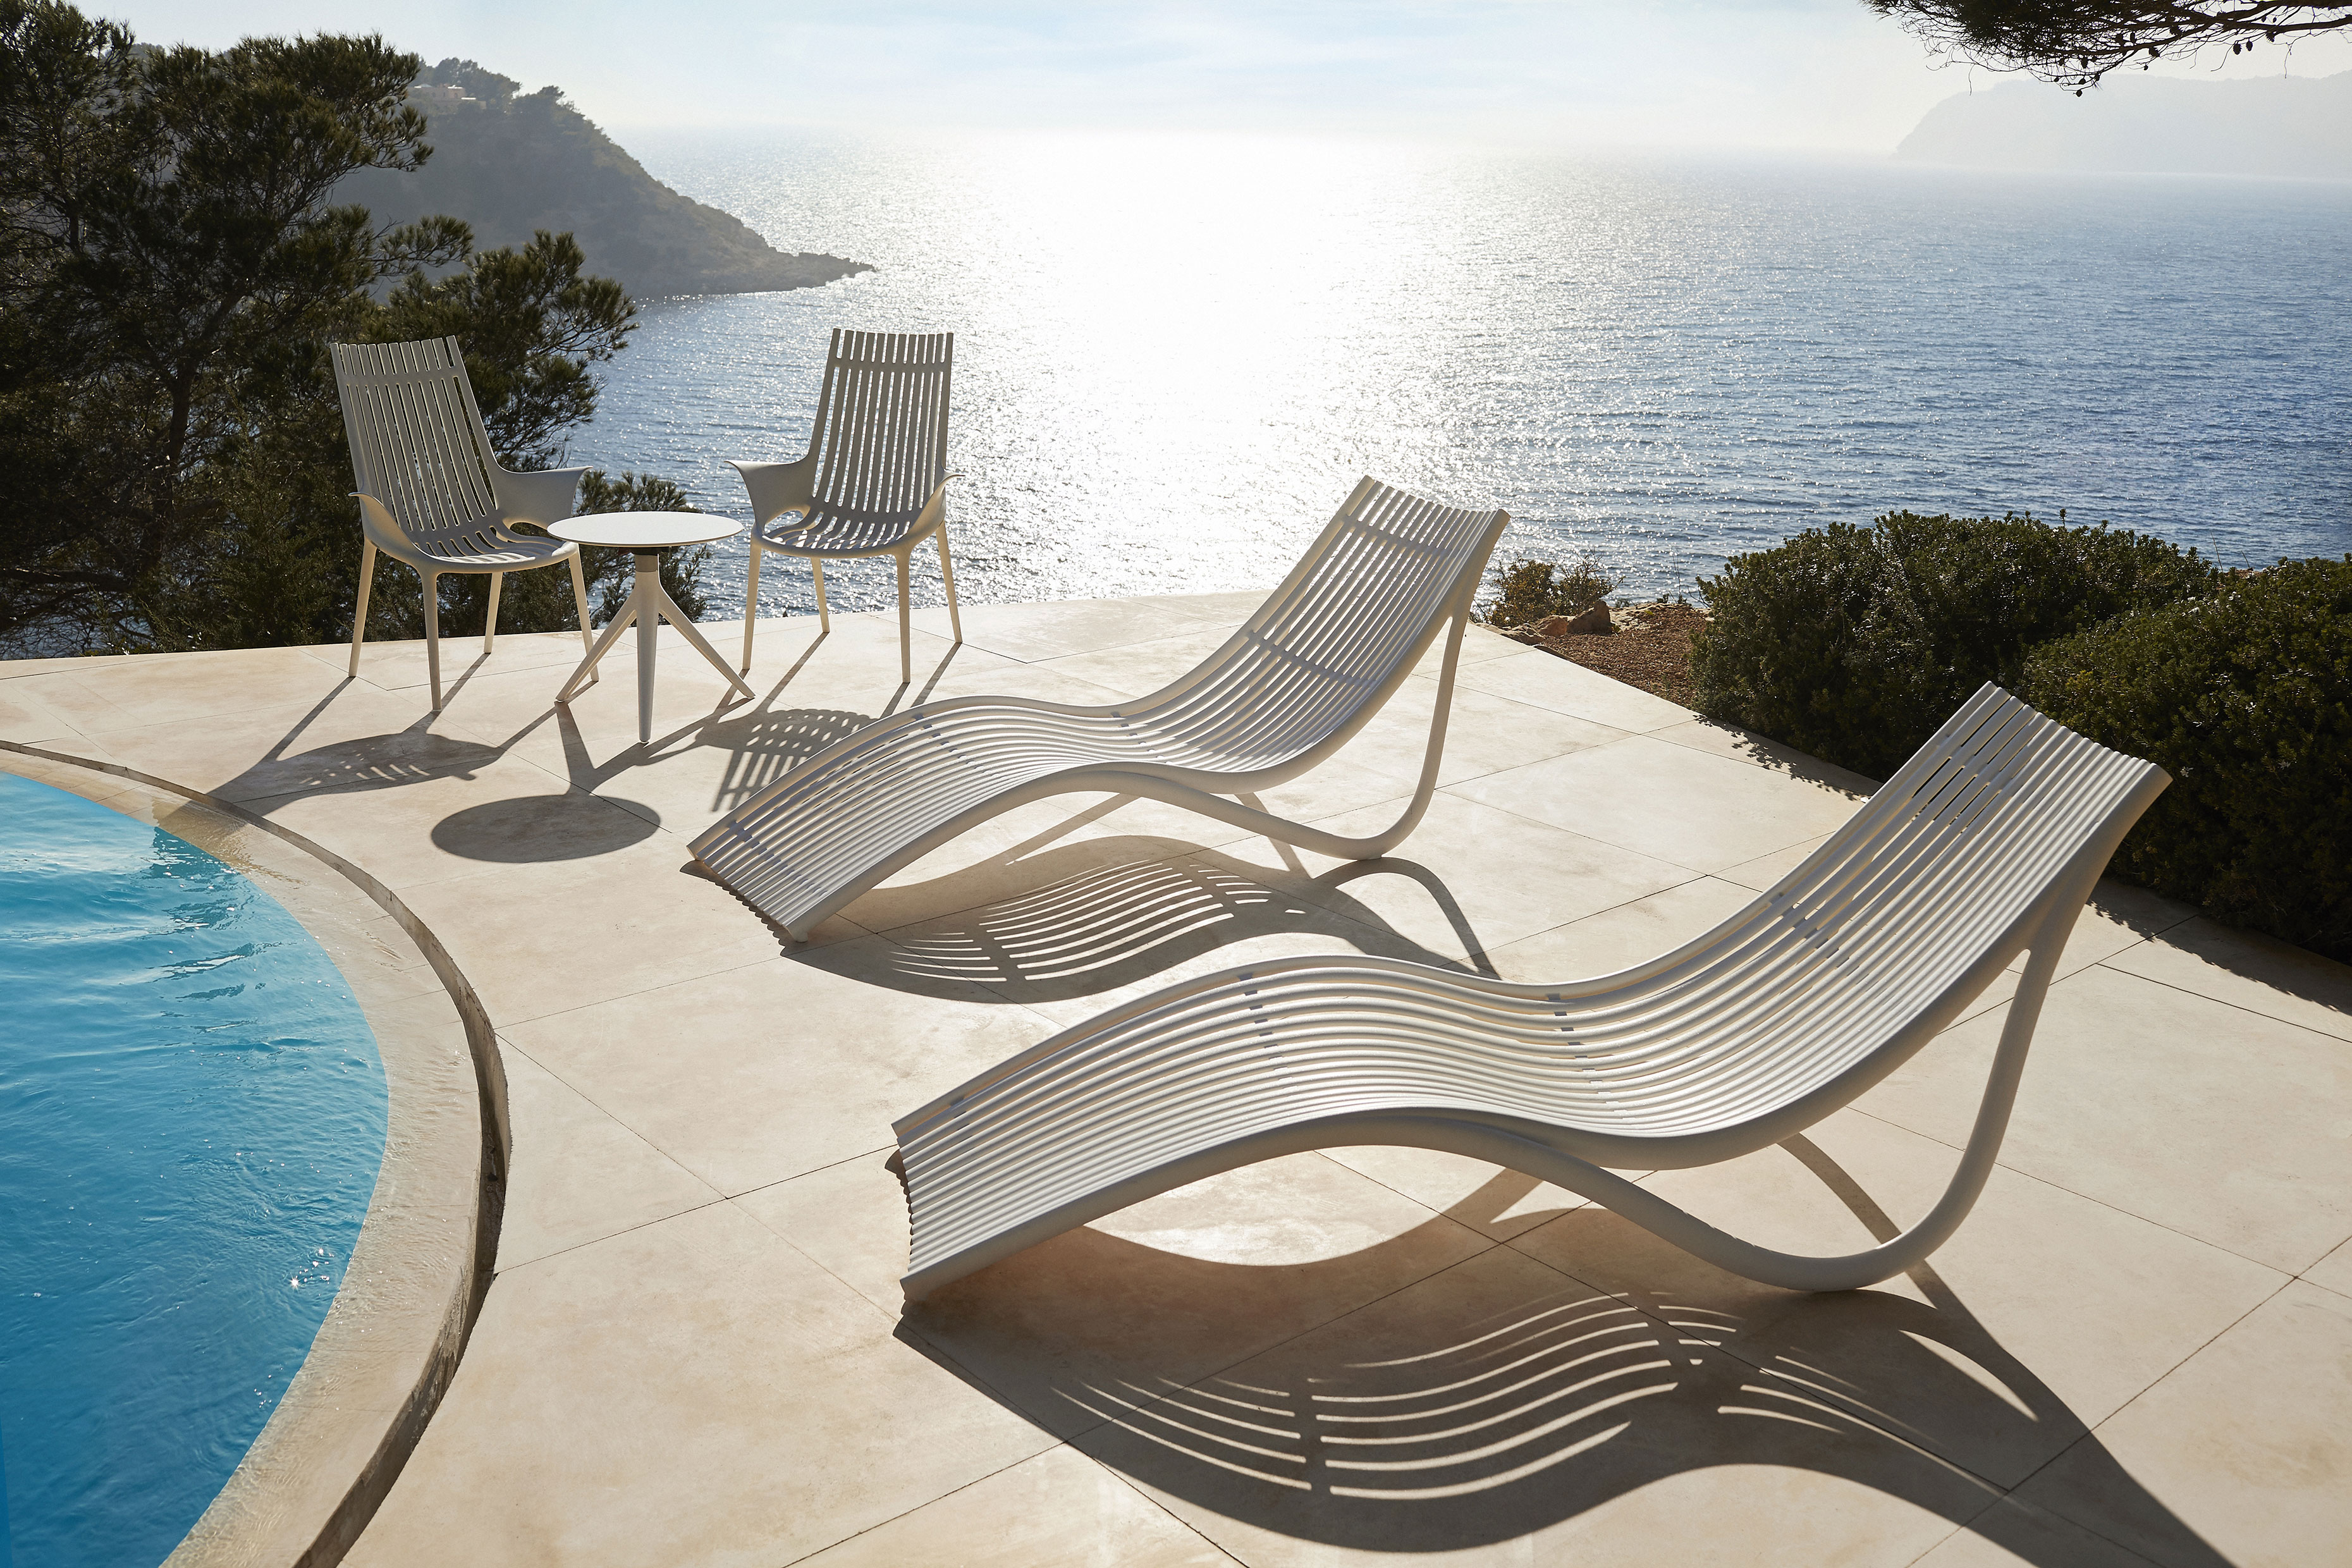 IBIZA collection designed by Eugeni Quitllet for Vondom. Photo: Courtesy of Vondom.